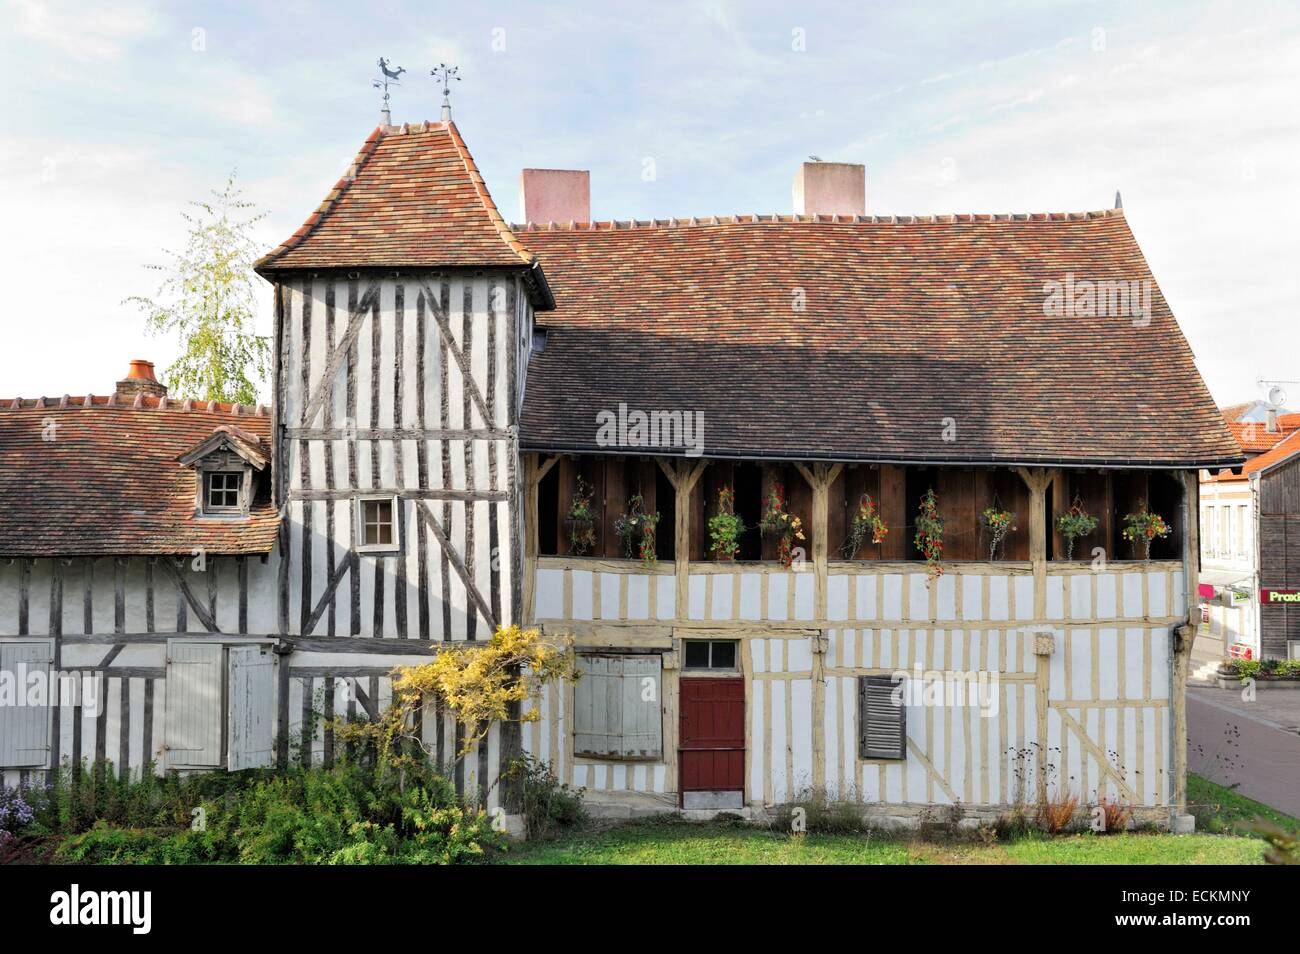 16th Century French Home - france-aube-chavanges-typical-wood-framed-house-dating-from-the-16th-ECKMNY_Good 16th Century French Home - france-aube-chavanges-typical-wood-framed-house-dating-from-the-16th-ECKMNY  Gallery_666794.jpg